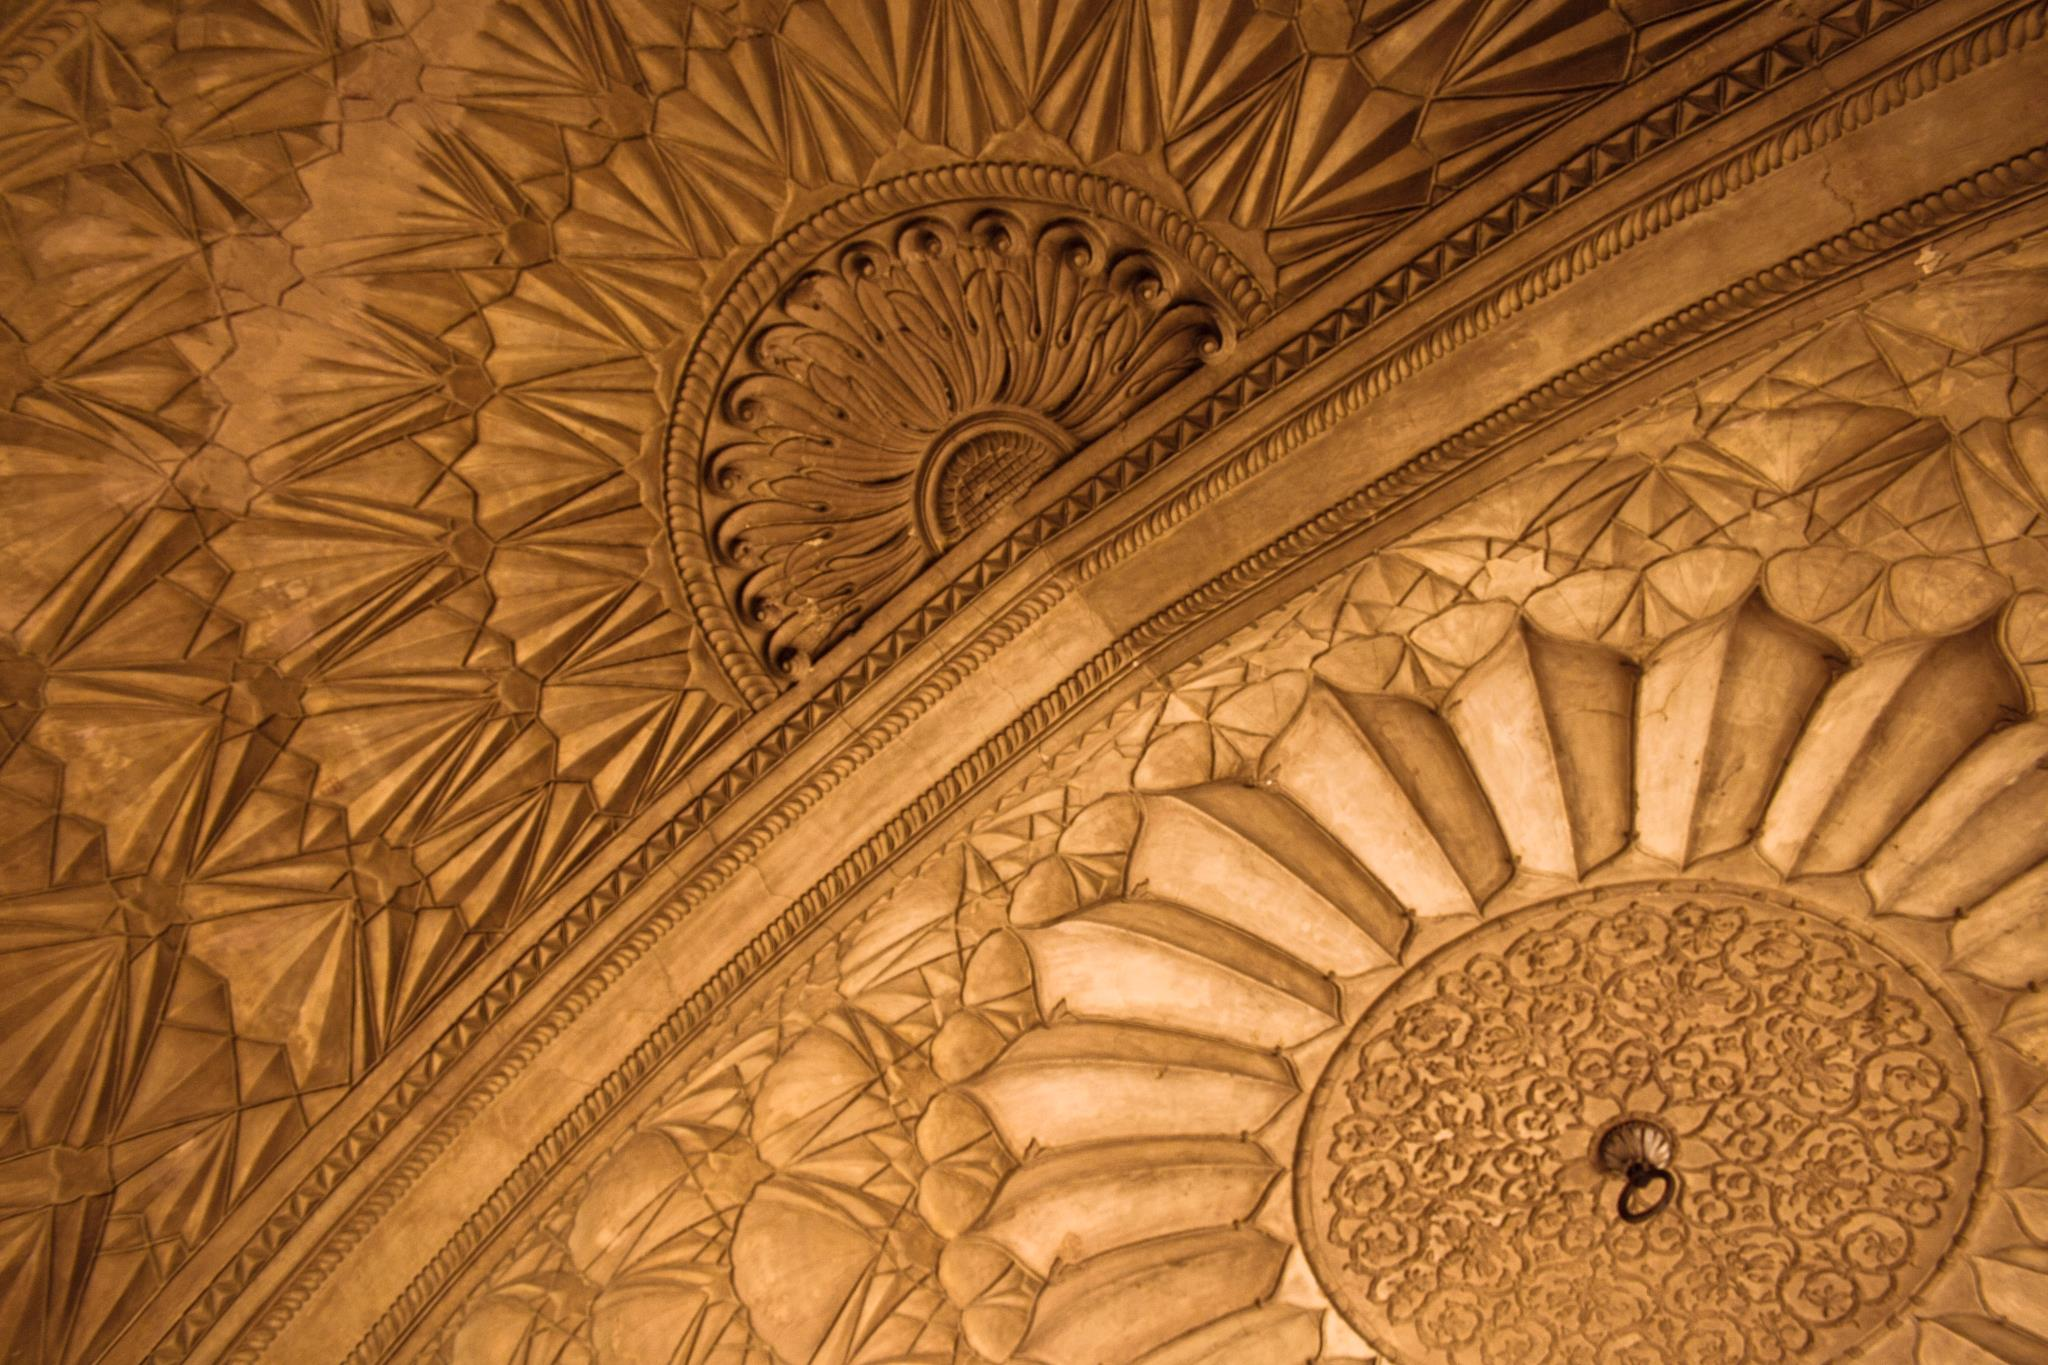 File:Ceiling patterns.jpg